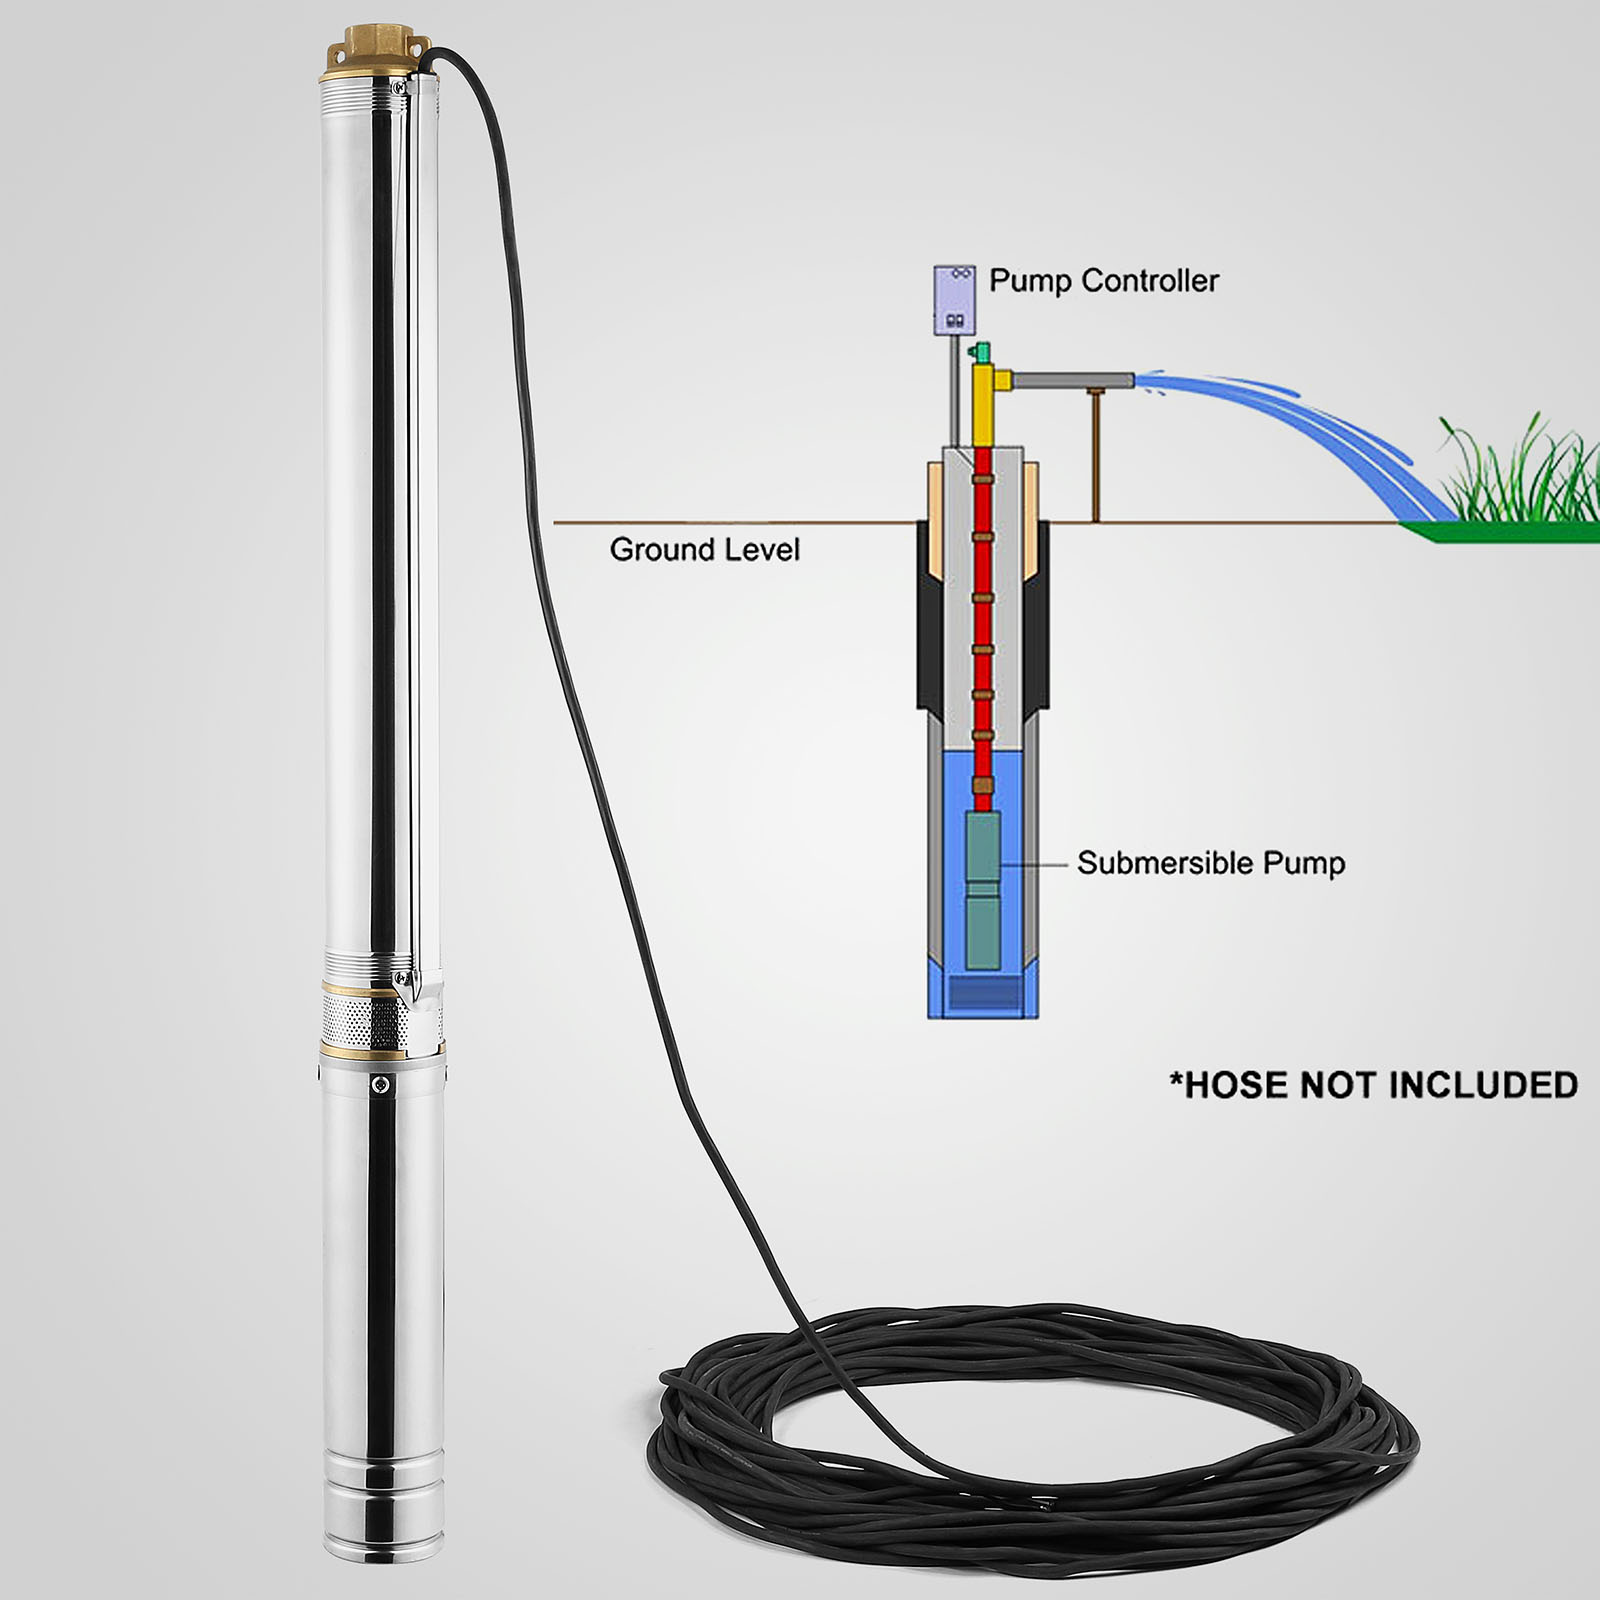 4-Borehole-Deep-Well-Submersible-Water-Pump-LONG-LIVE-CABLE-1500W-135m-Max